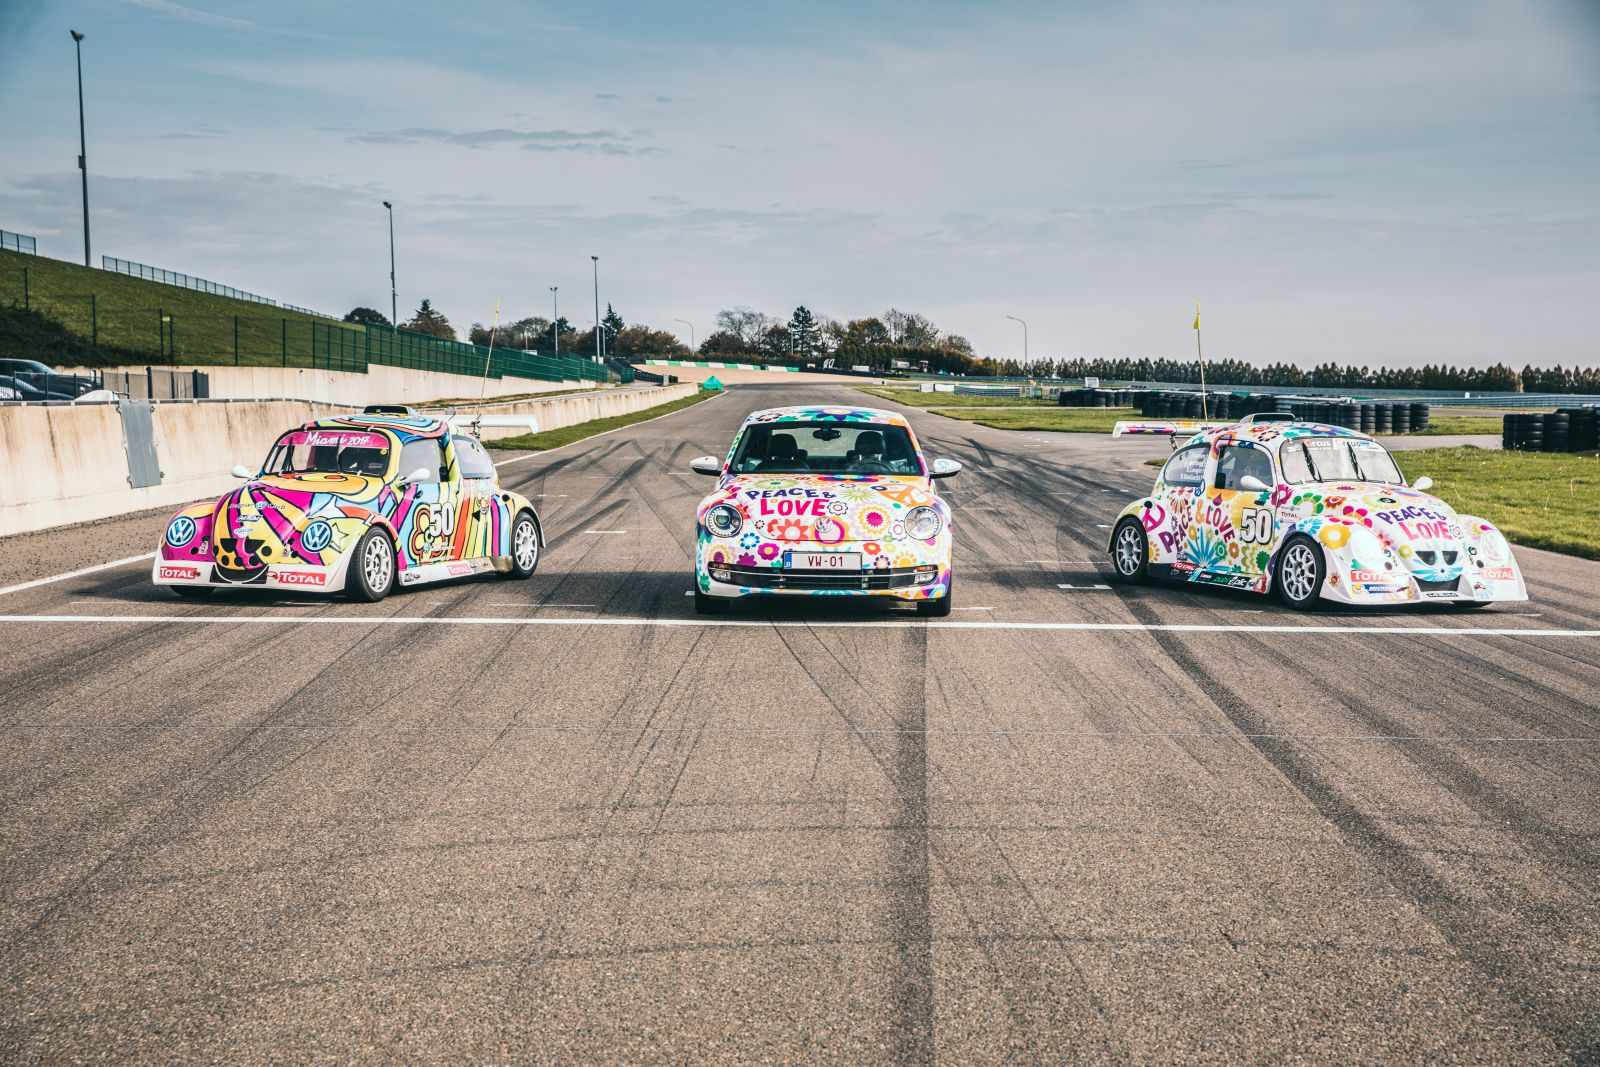 image 1 - Test & Discovery Day : ontdek de VW Fun Cup in Mettet!